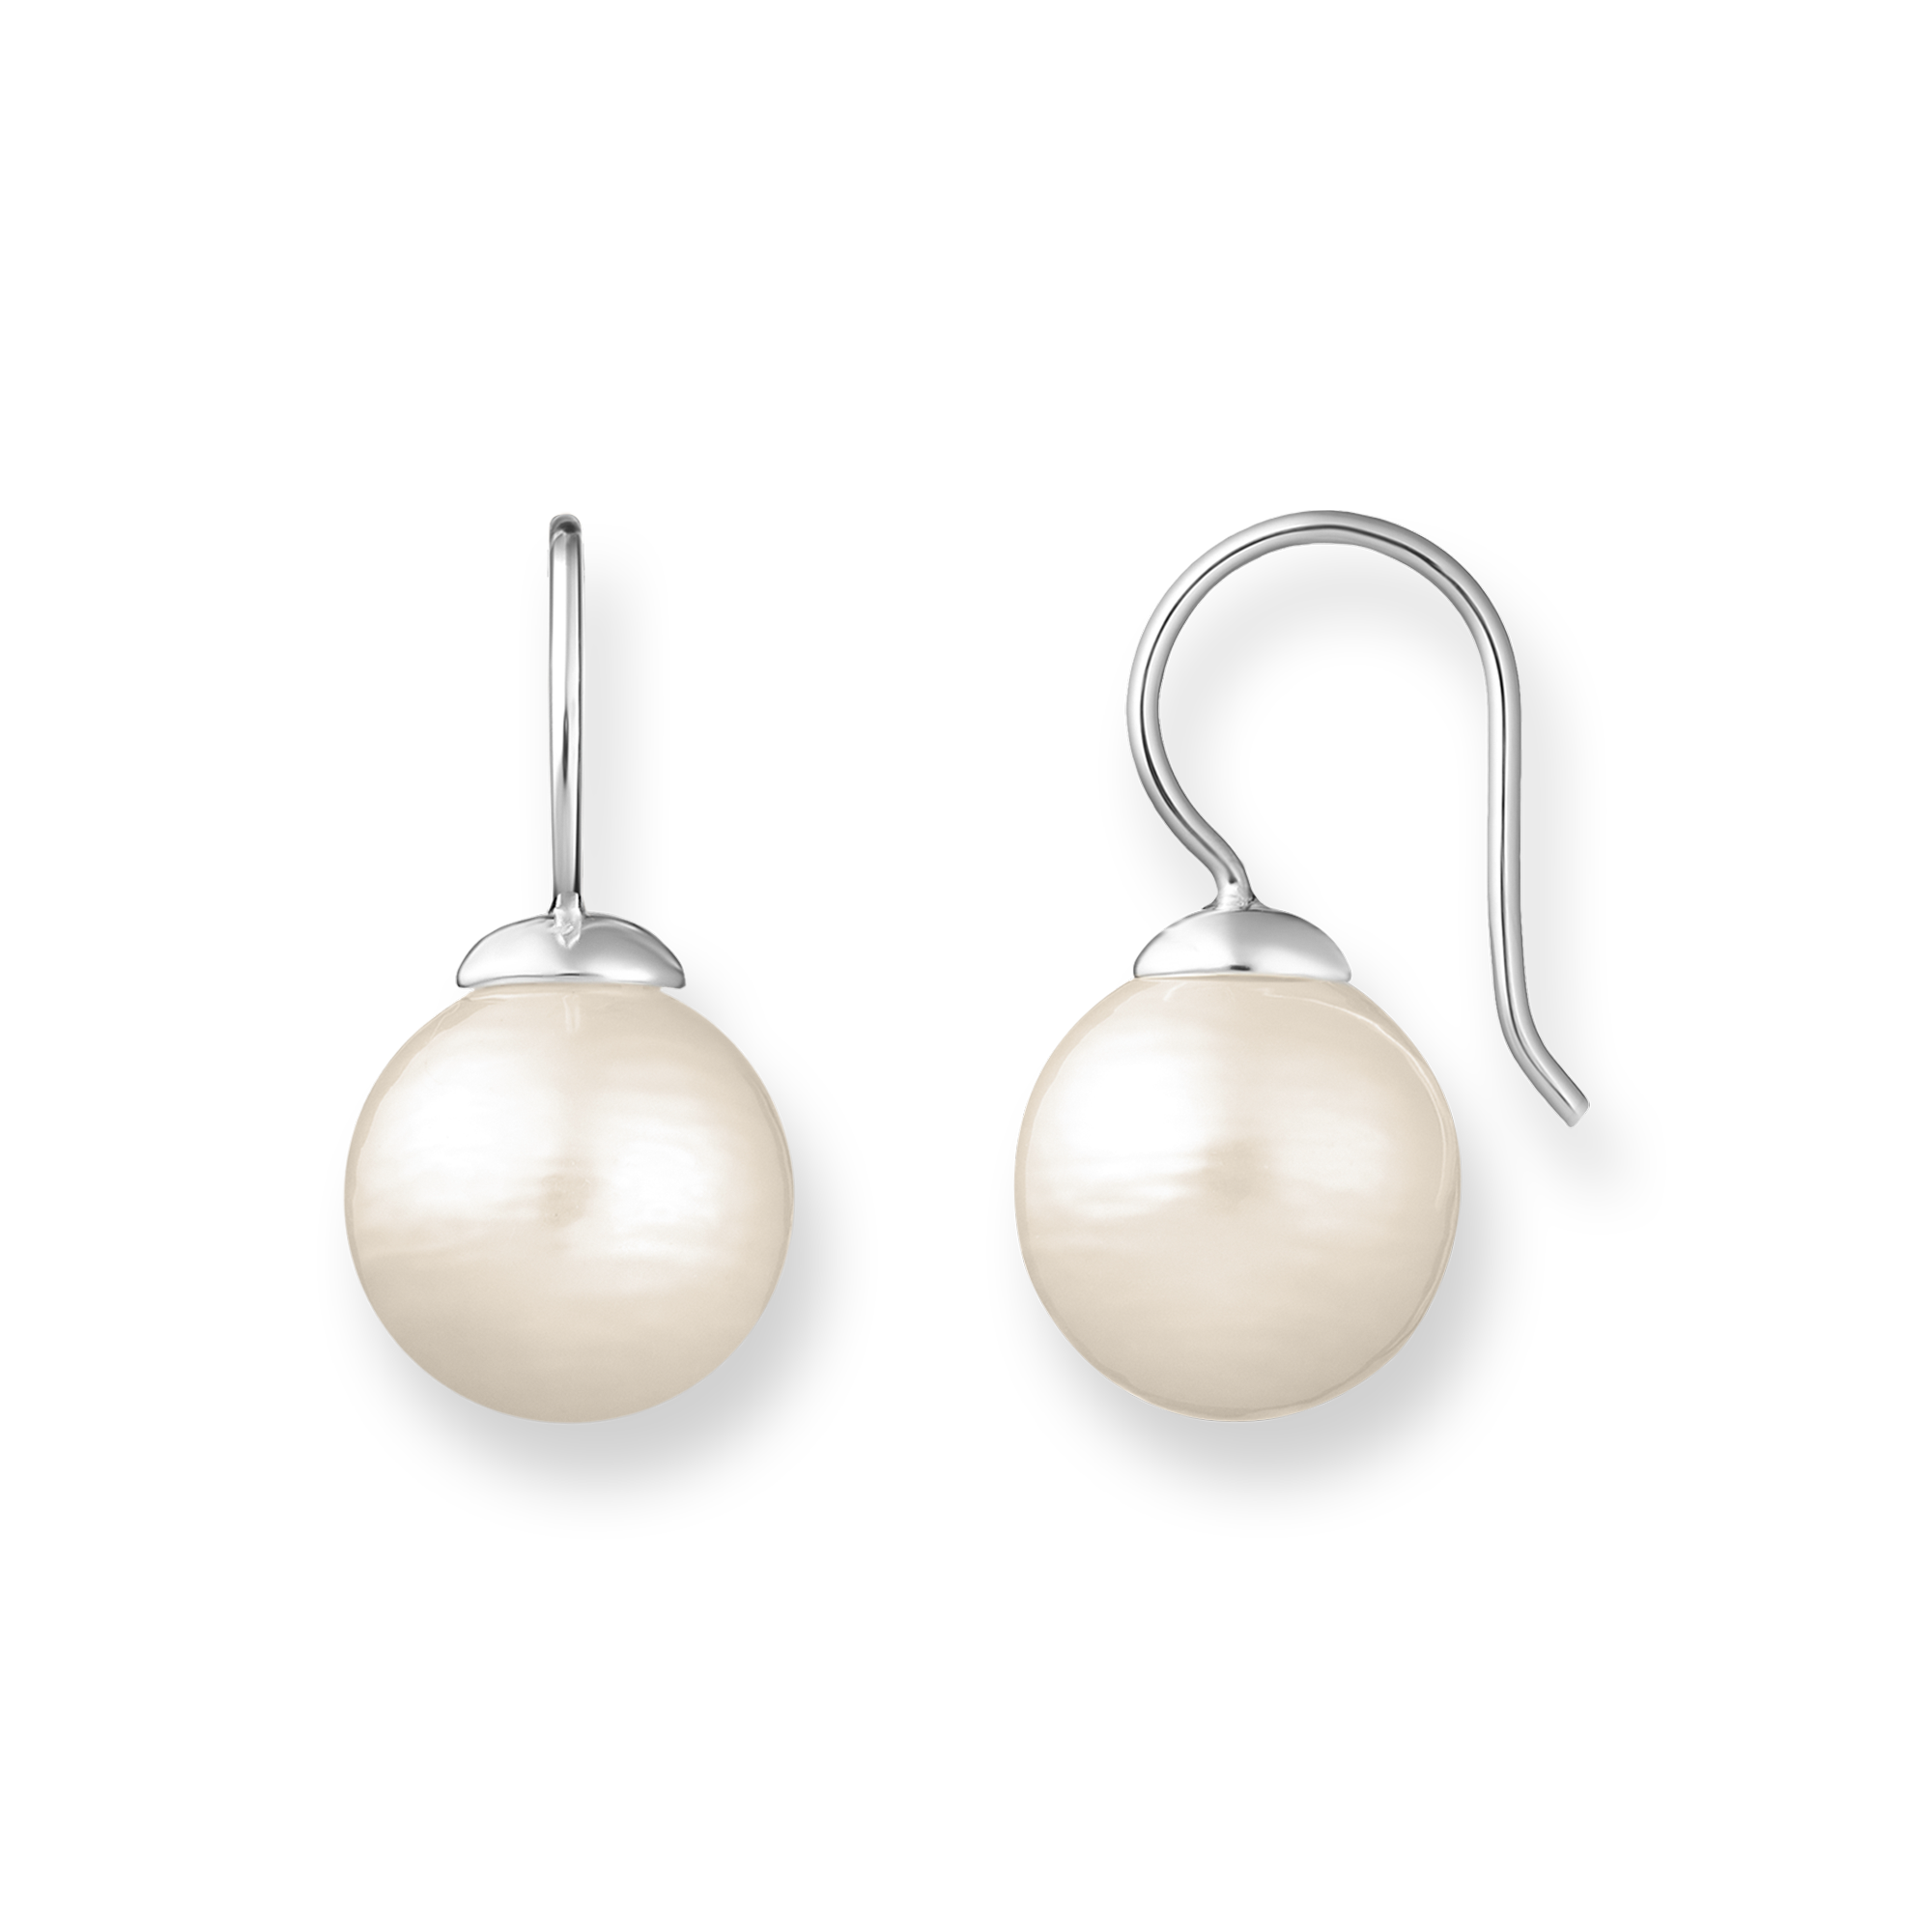 Thomas Sabo - pearl earrings - 1